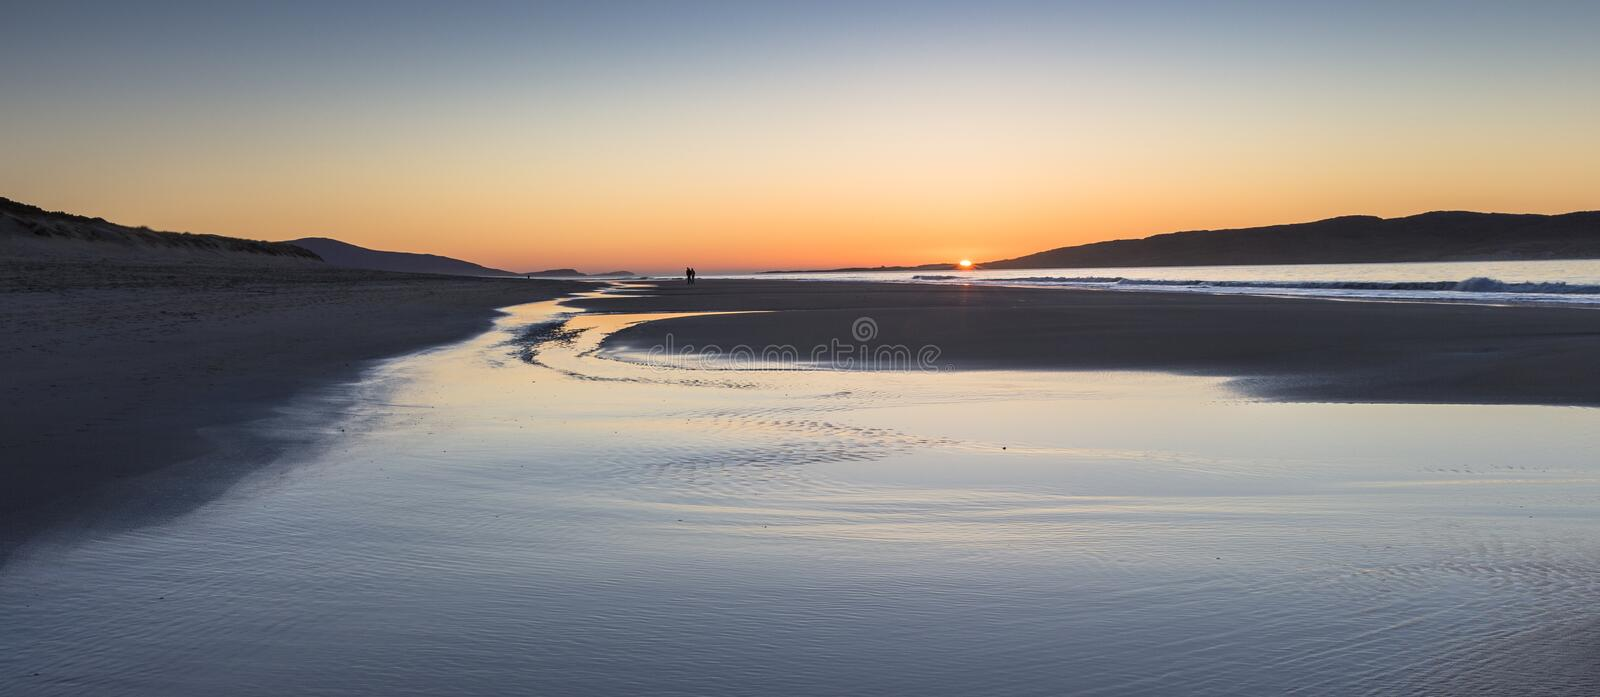 Luskentyre beach on the Isle of Harris in the Outer Hebrides. royalty free stock photography